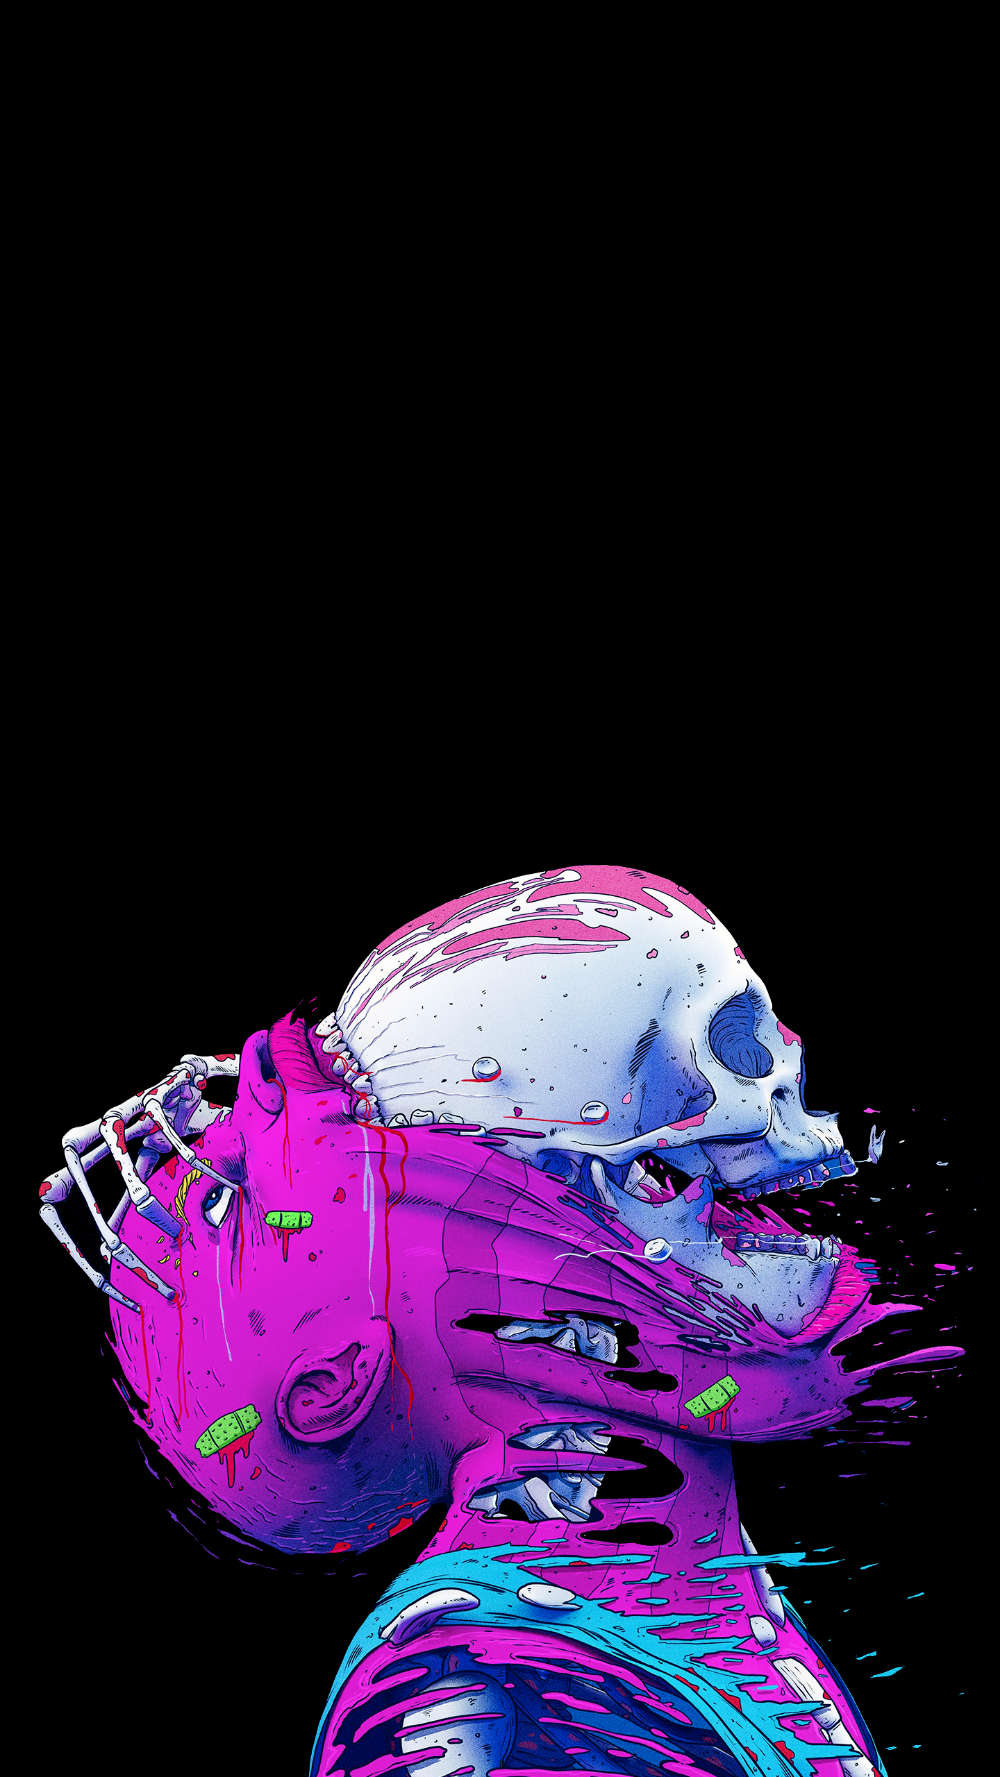 Great for OLED screens [1440 x 2960] Artistic wallpaper